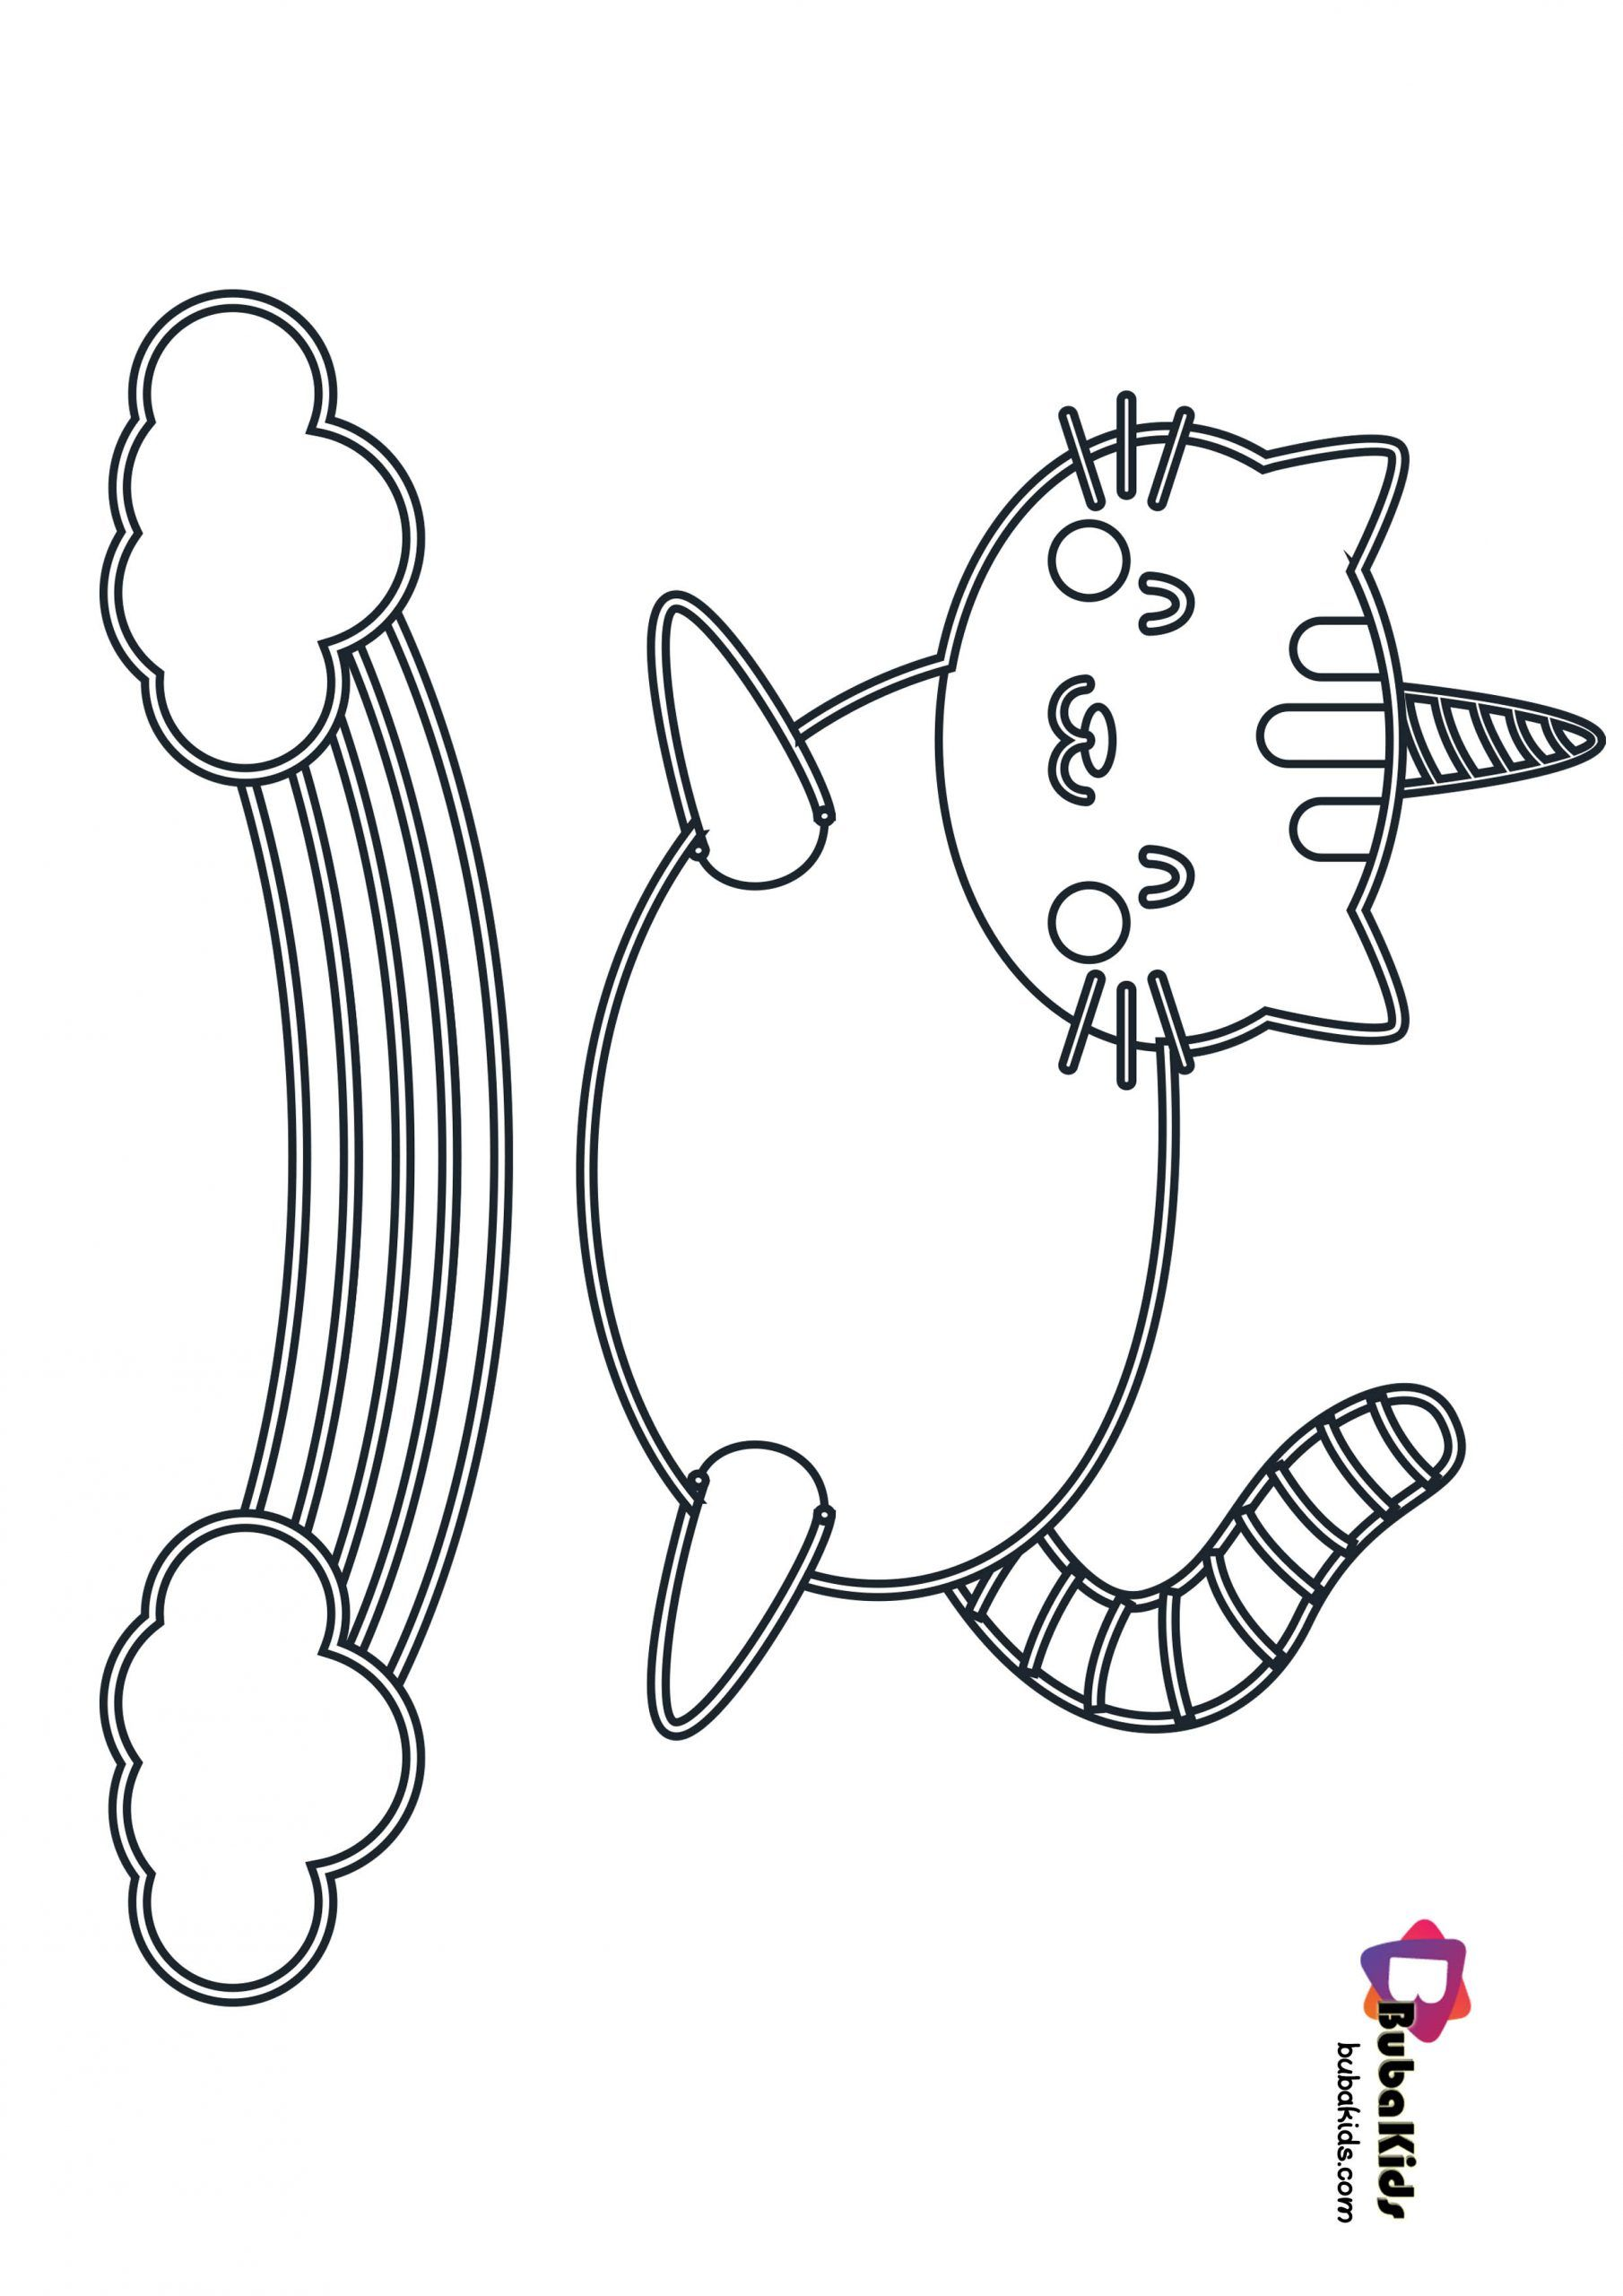 Cute Unicorn Cat Coloring Page Bubakids Collection Of Animal Coloring Pages For Teenage Printable That You Can Down Cat Coloring Page Cat Colors Coloring Pages